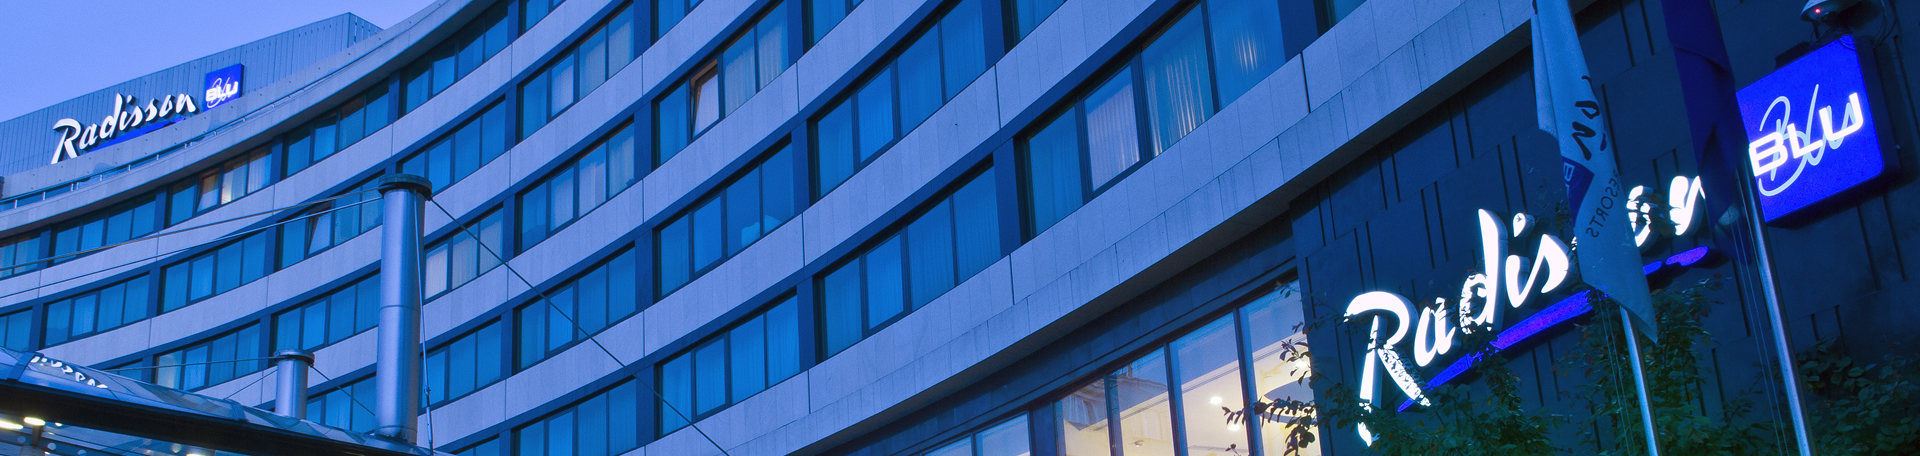 radisson_header_home_1920x456_crop_and_resize_to_fit_478b24840a